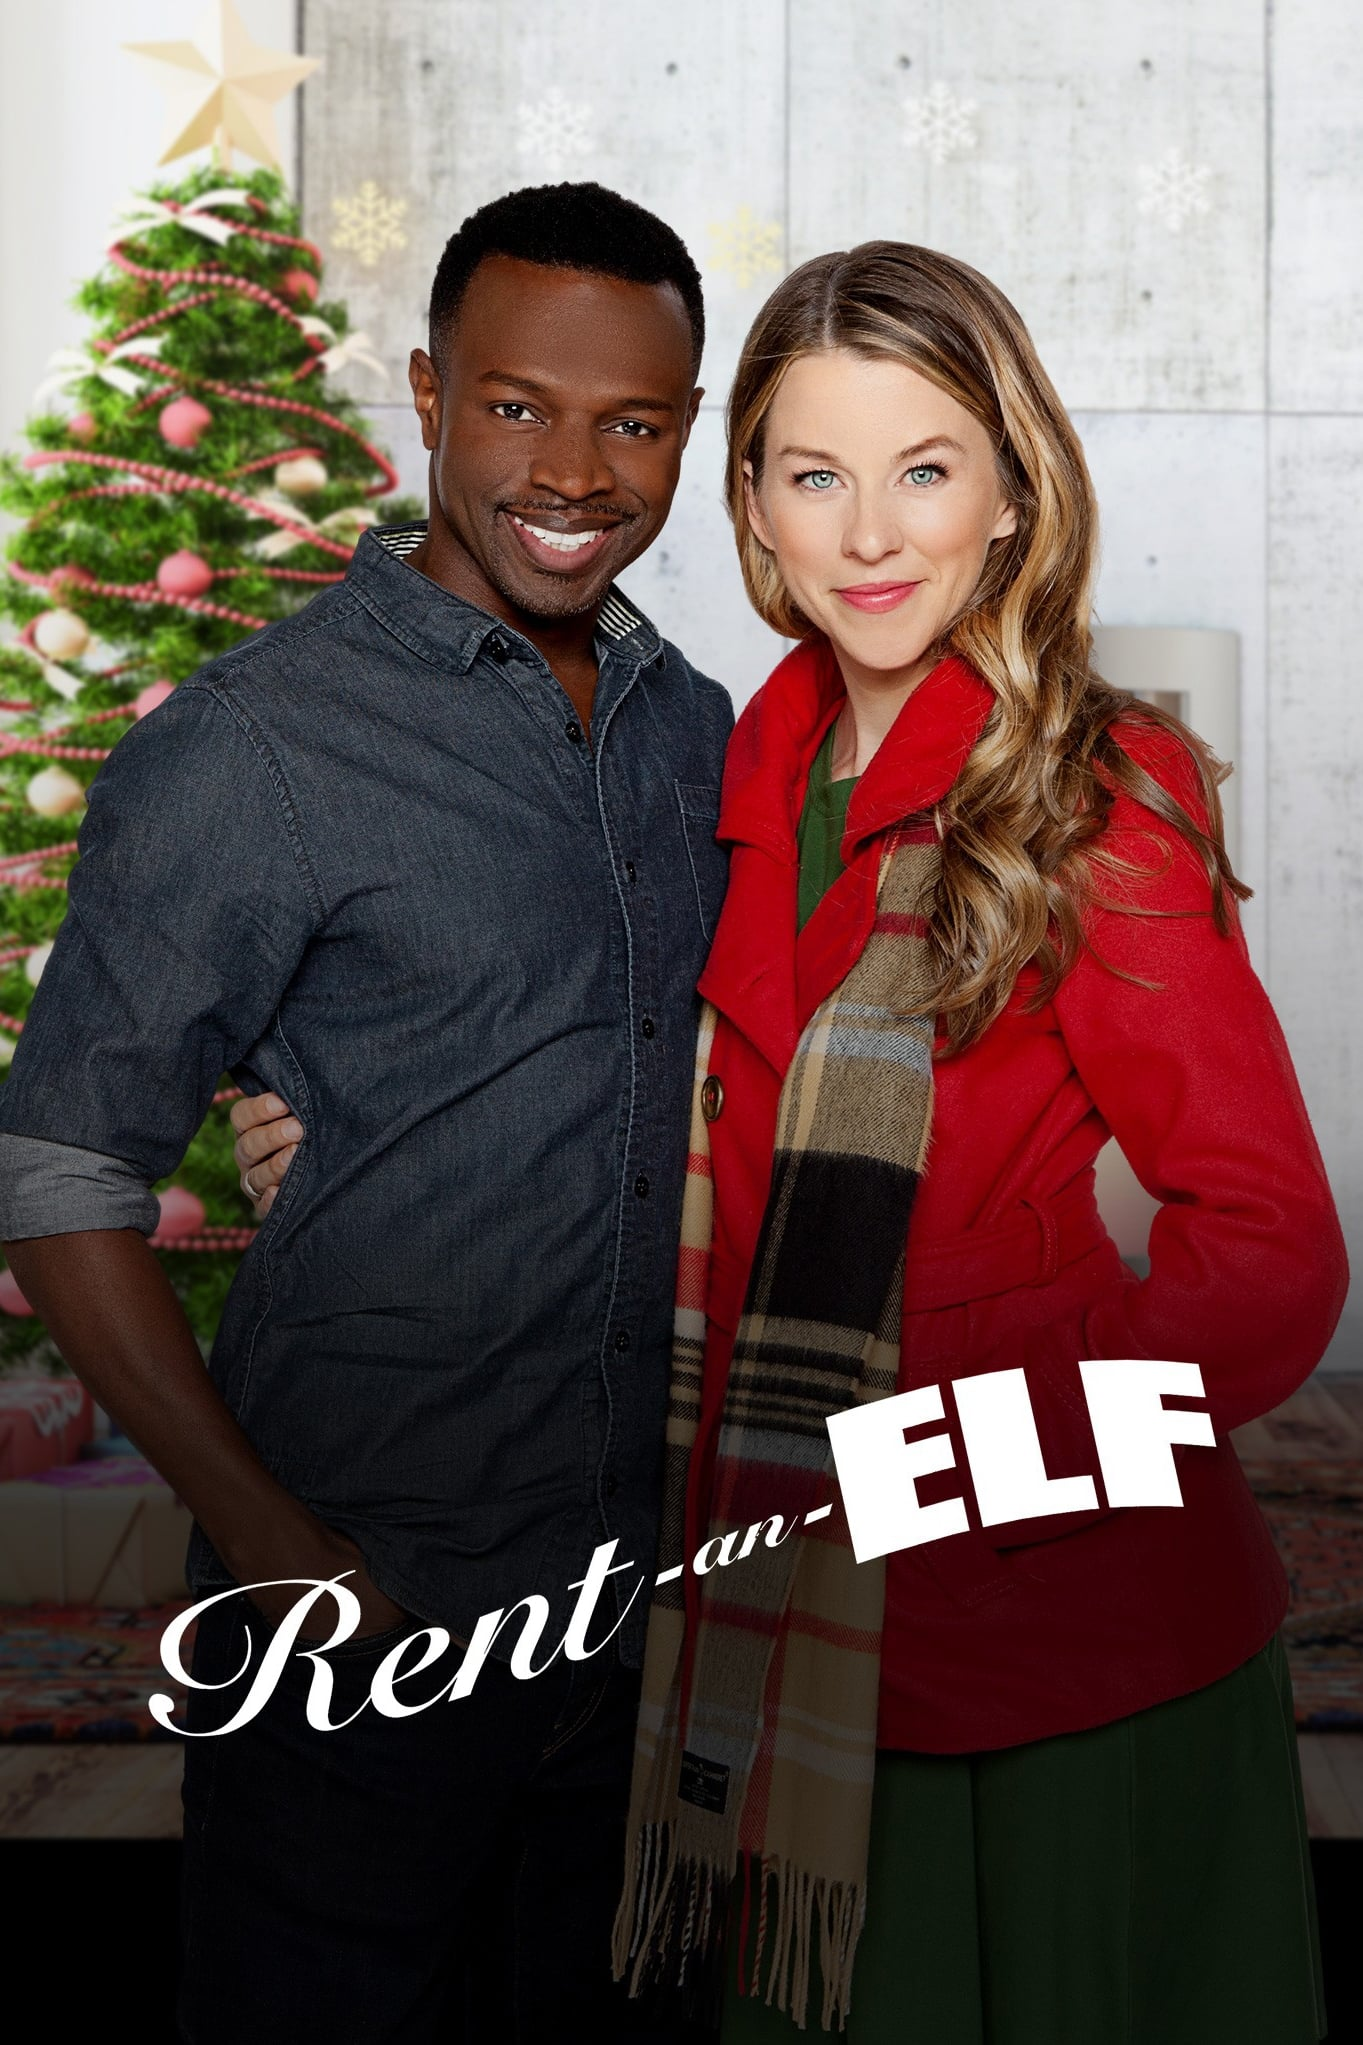 download rentanelf 2018 yts amp yify hd torrent movie